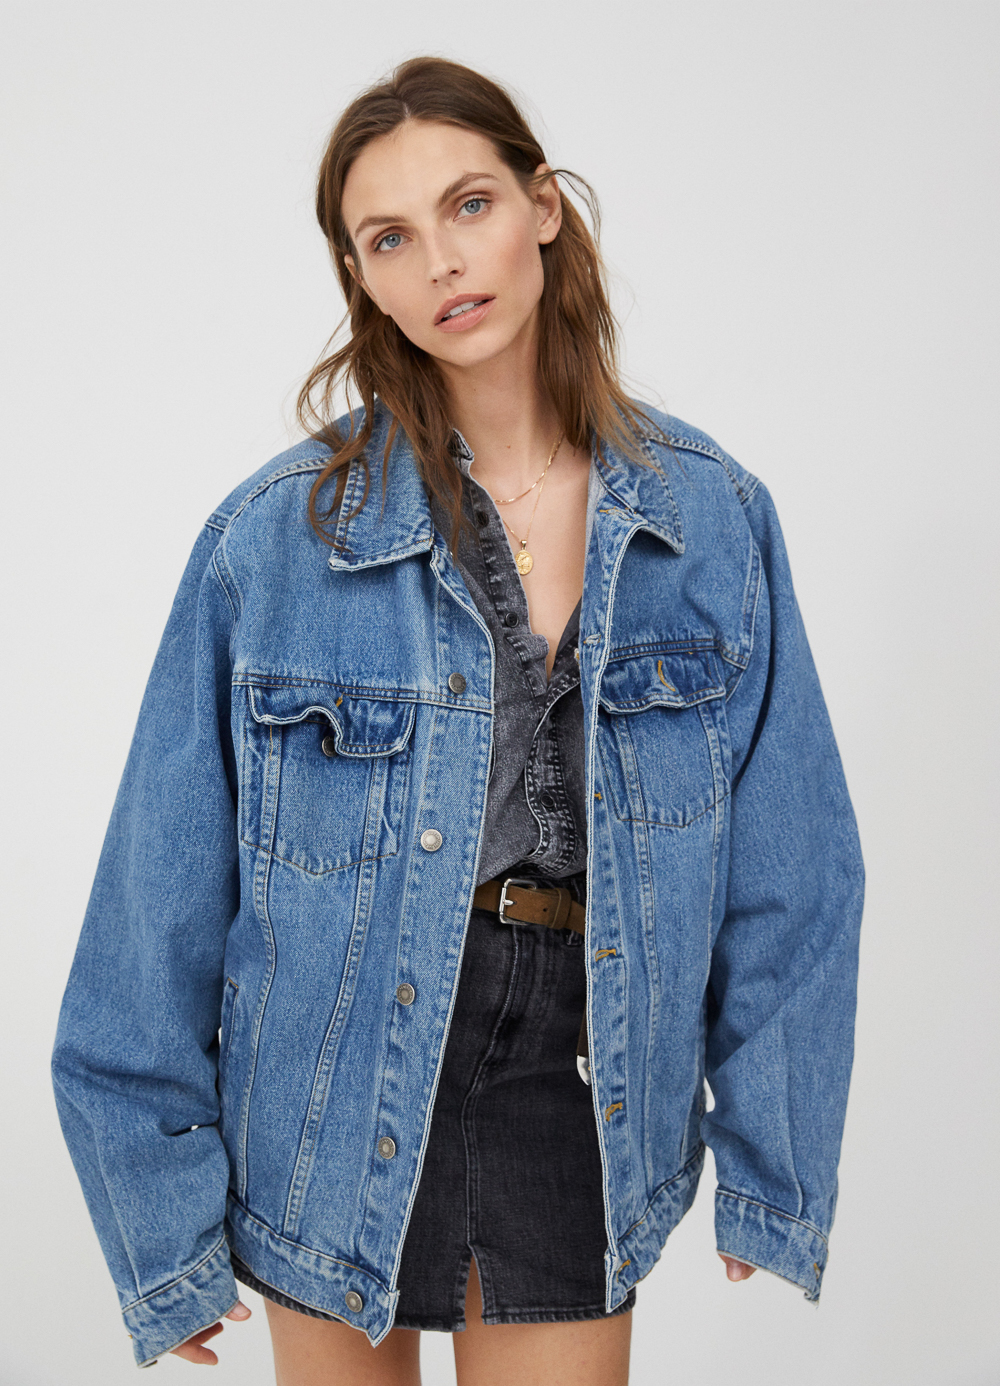 ROSE & IVY Journal Our Favorite Denim Jackets